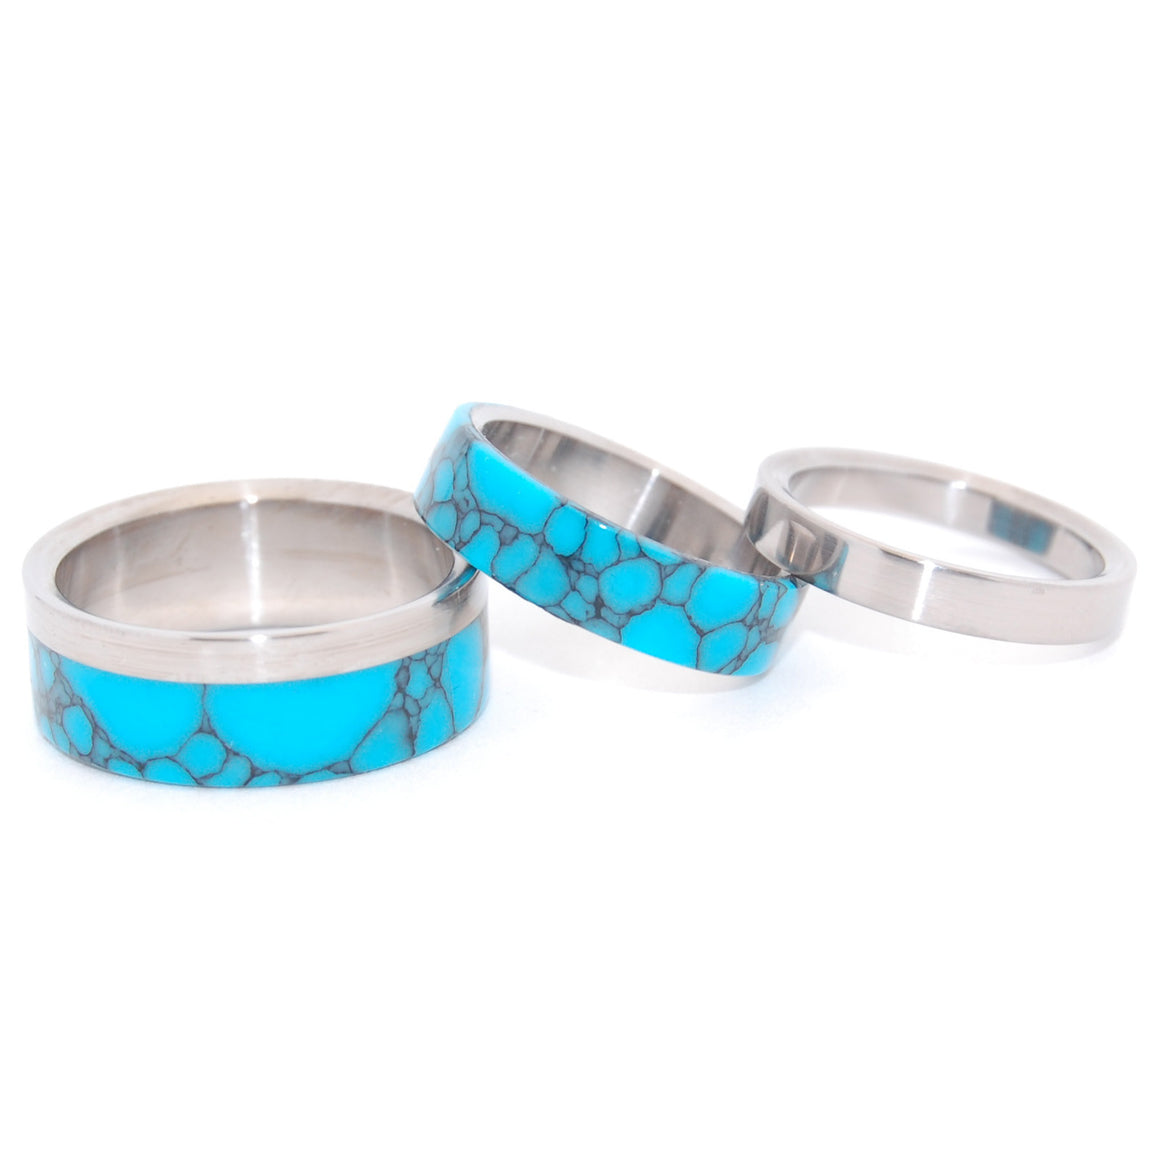 TEMPEST LOOMS | Turquoise & Titanium - Wedding & Engagement Set - Minter and Richter Designs